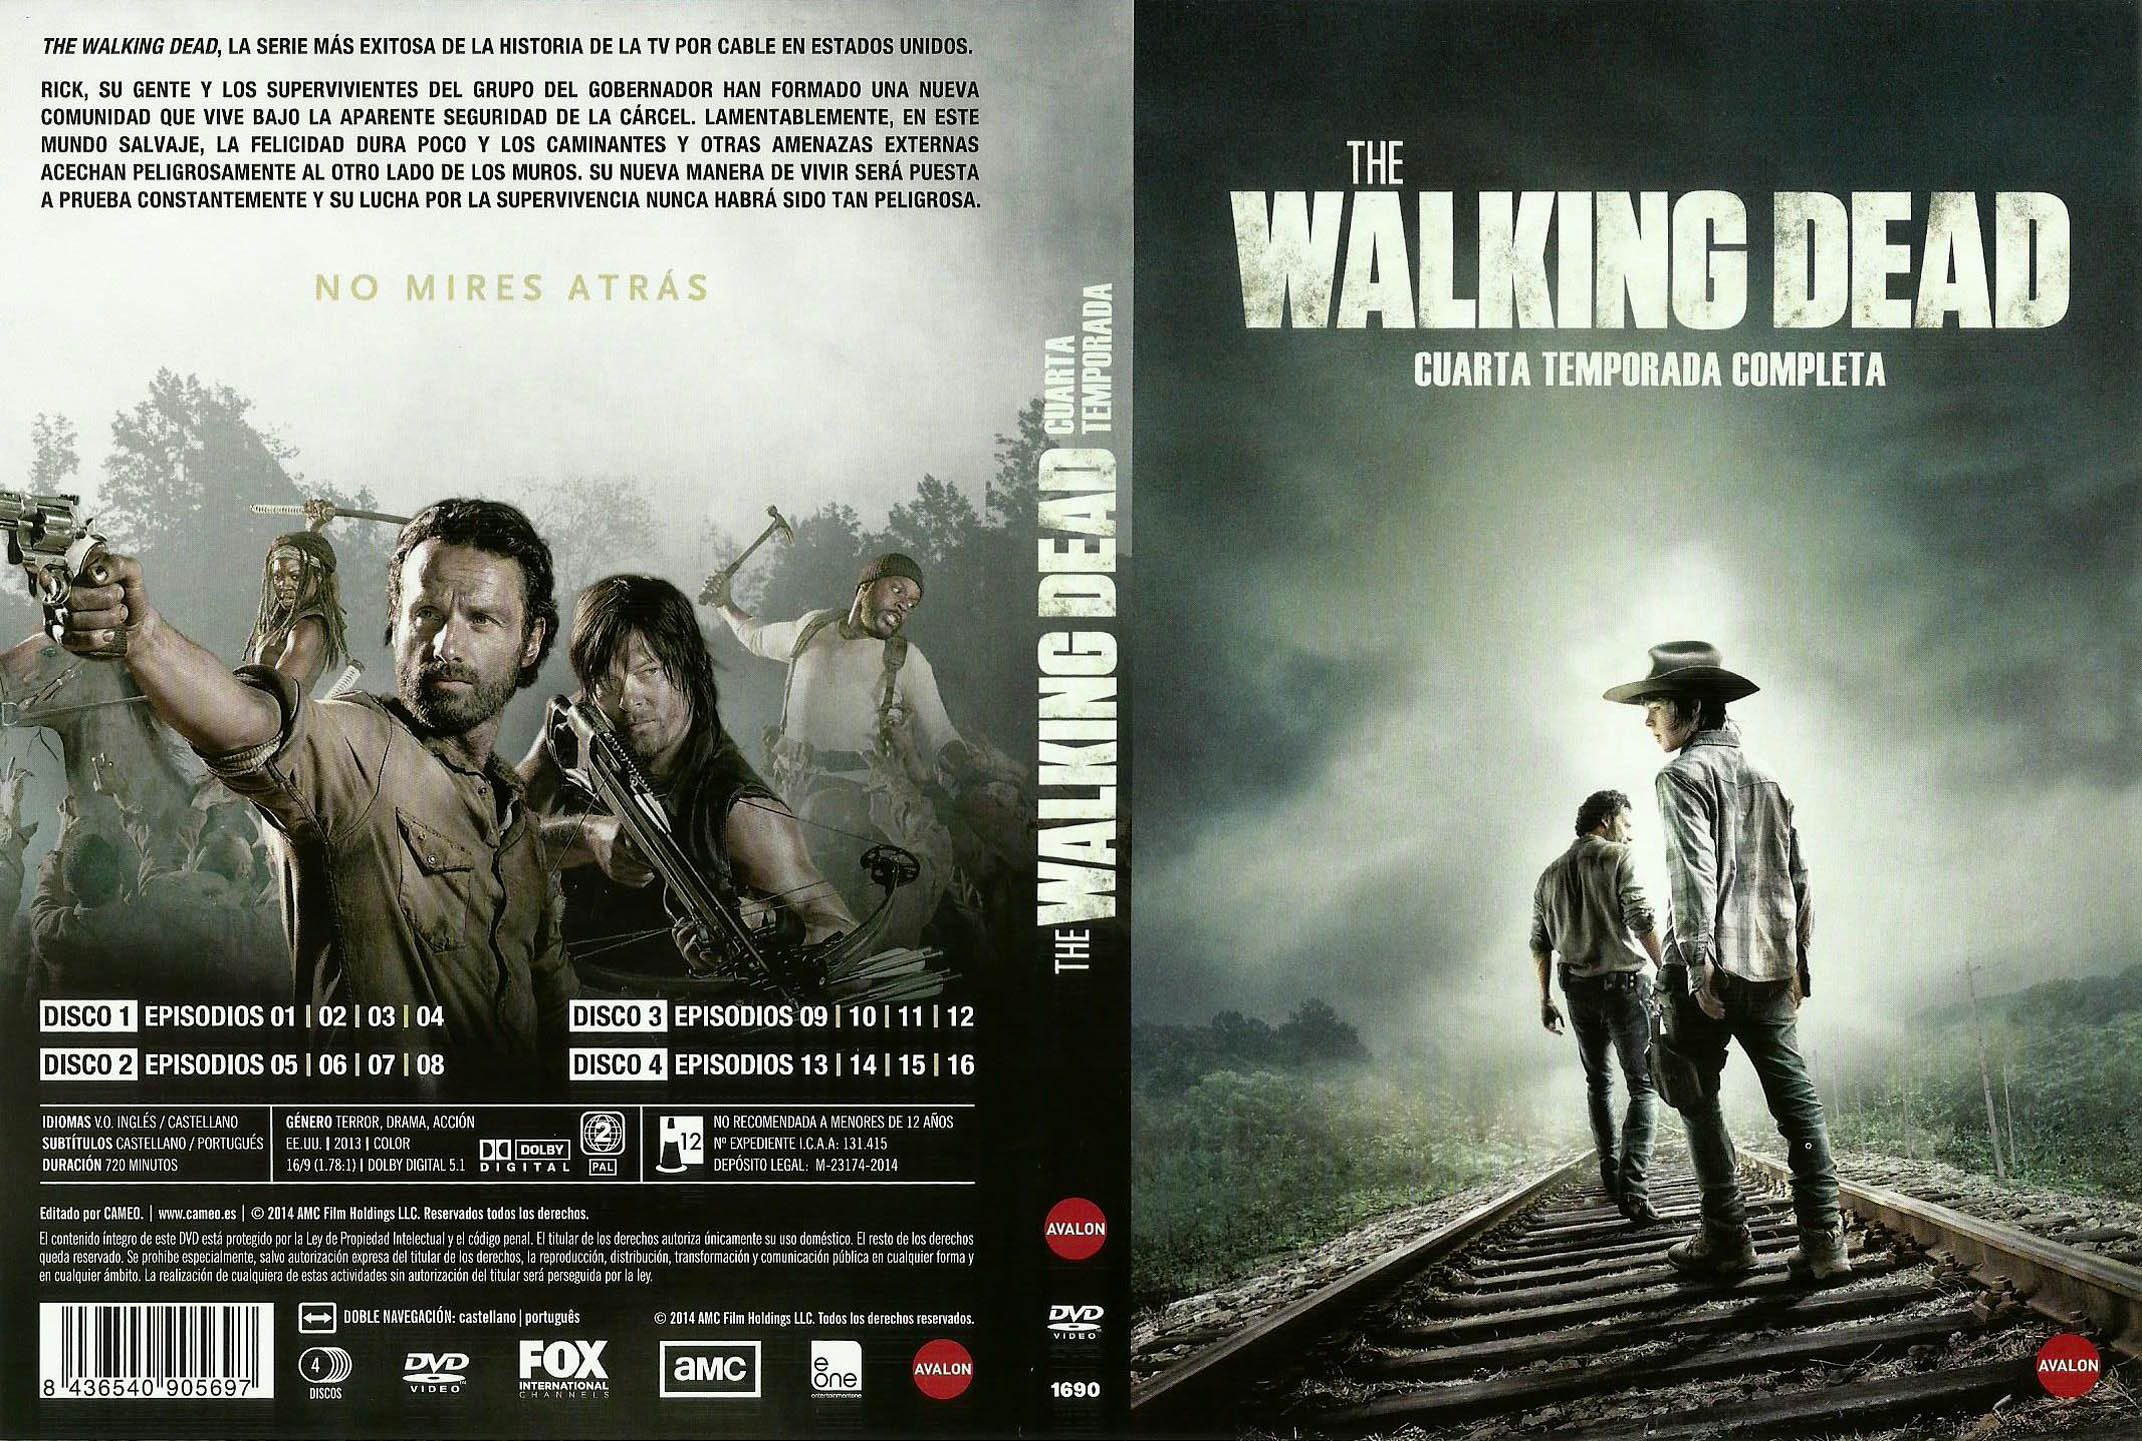 Emejing The Walking Dead Cuarta Temporada Ideas - Casa & Diseño ...